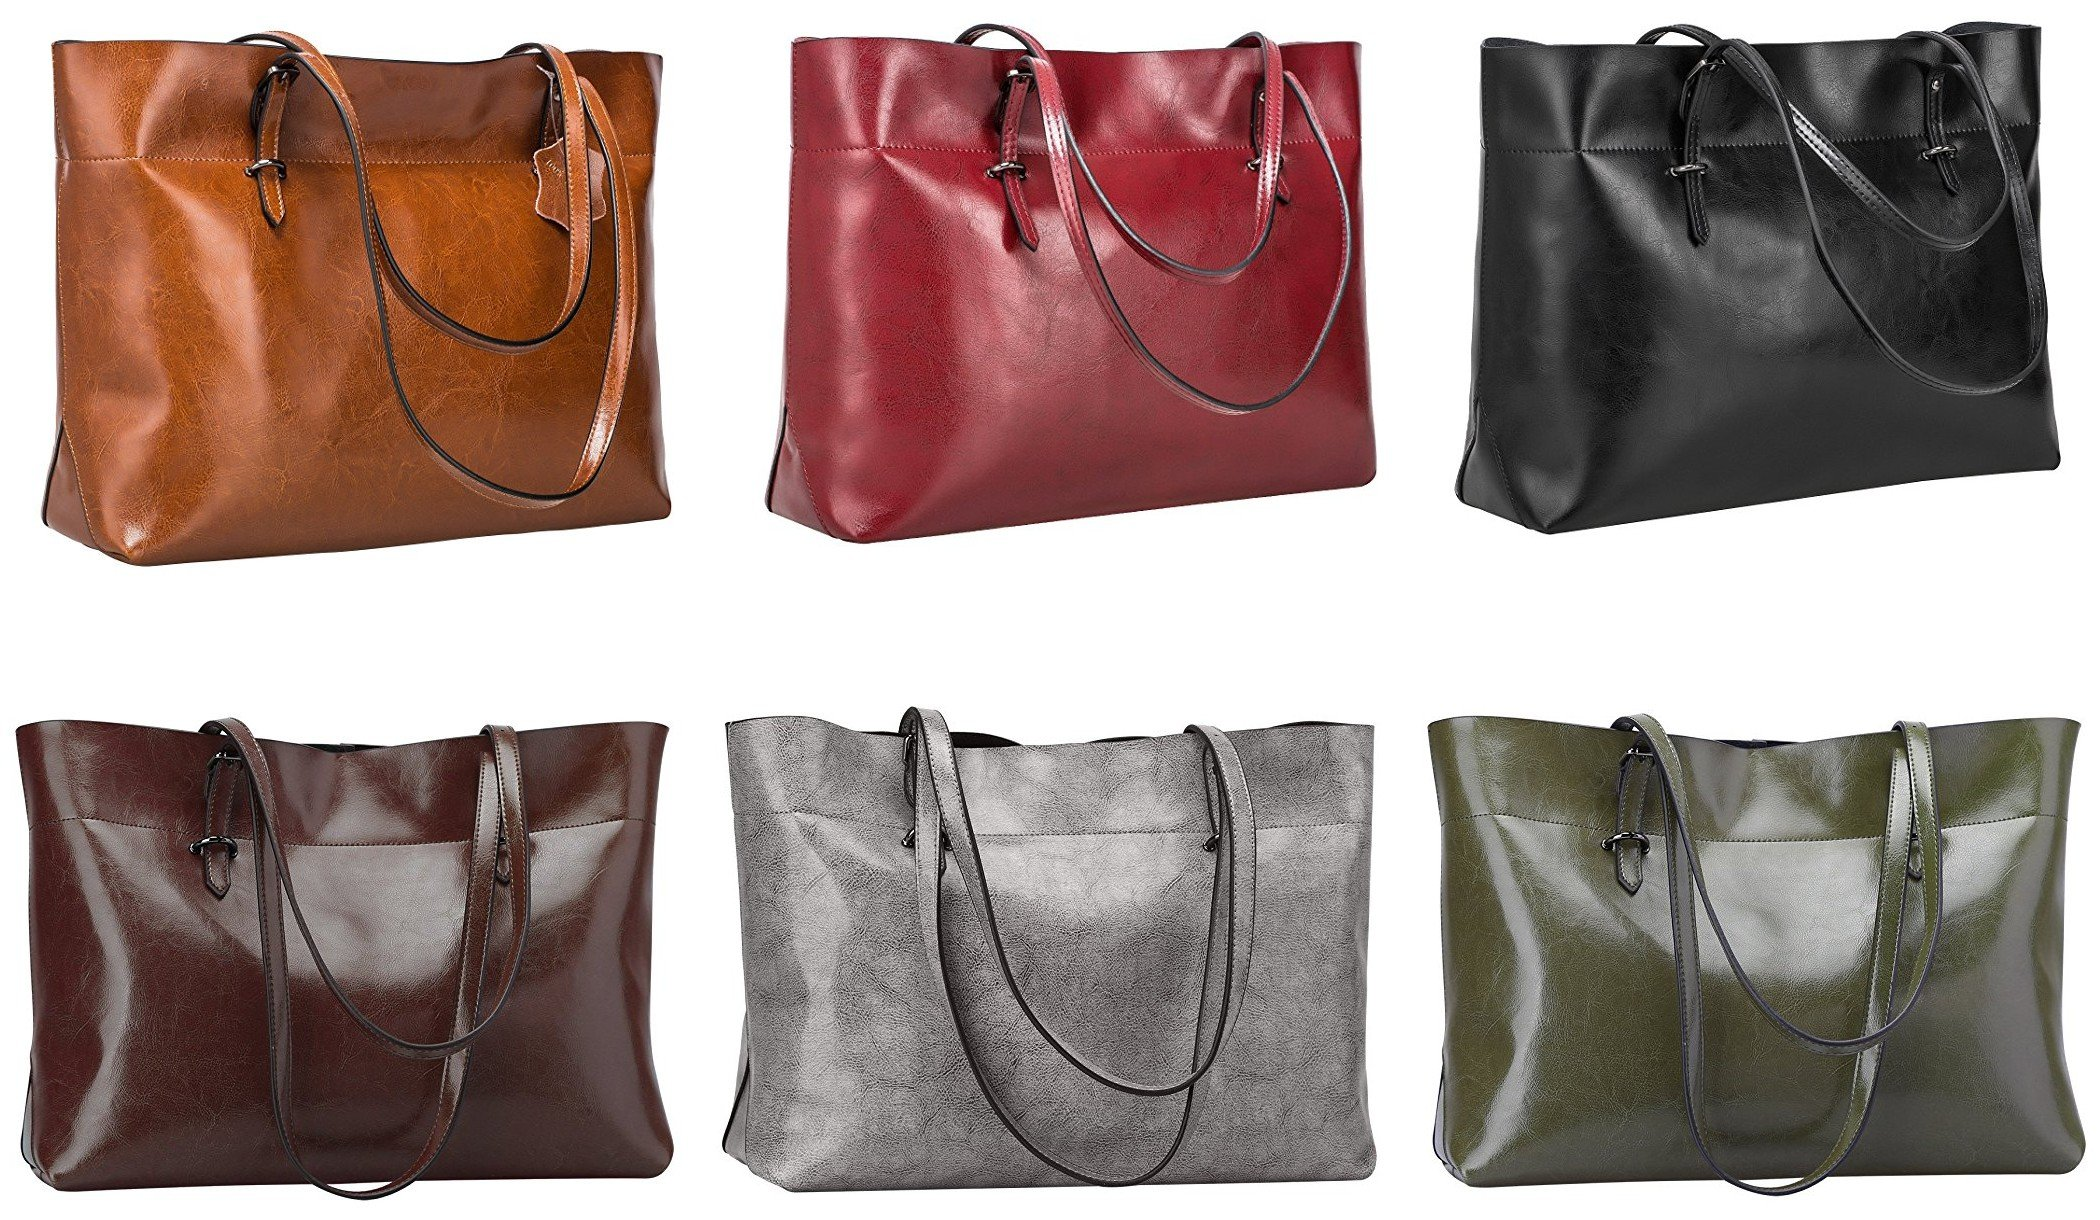 S-ZONE Purse Colors v2